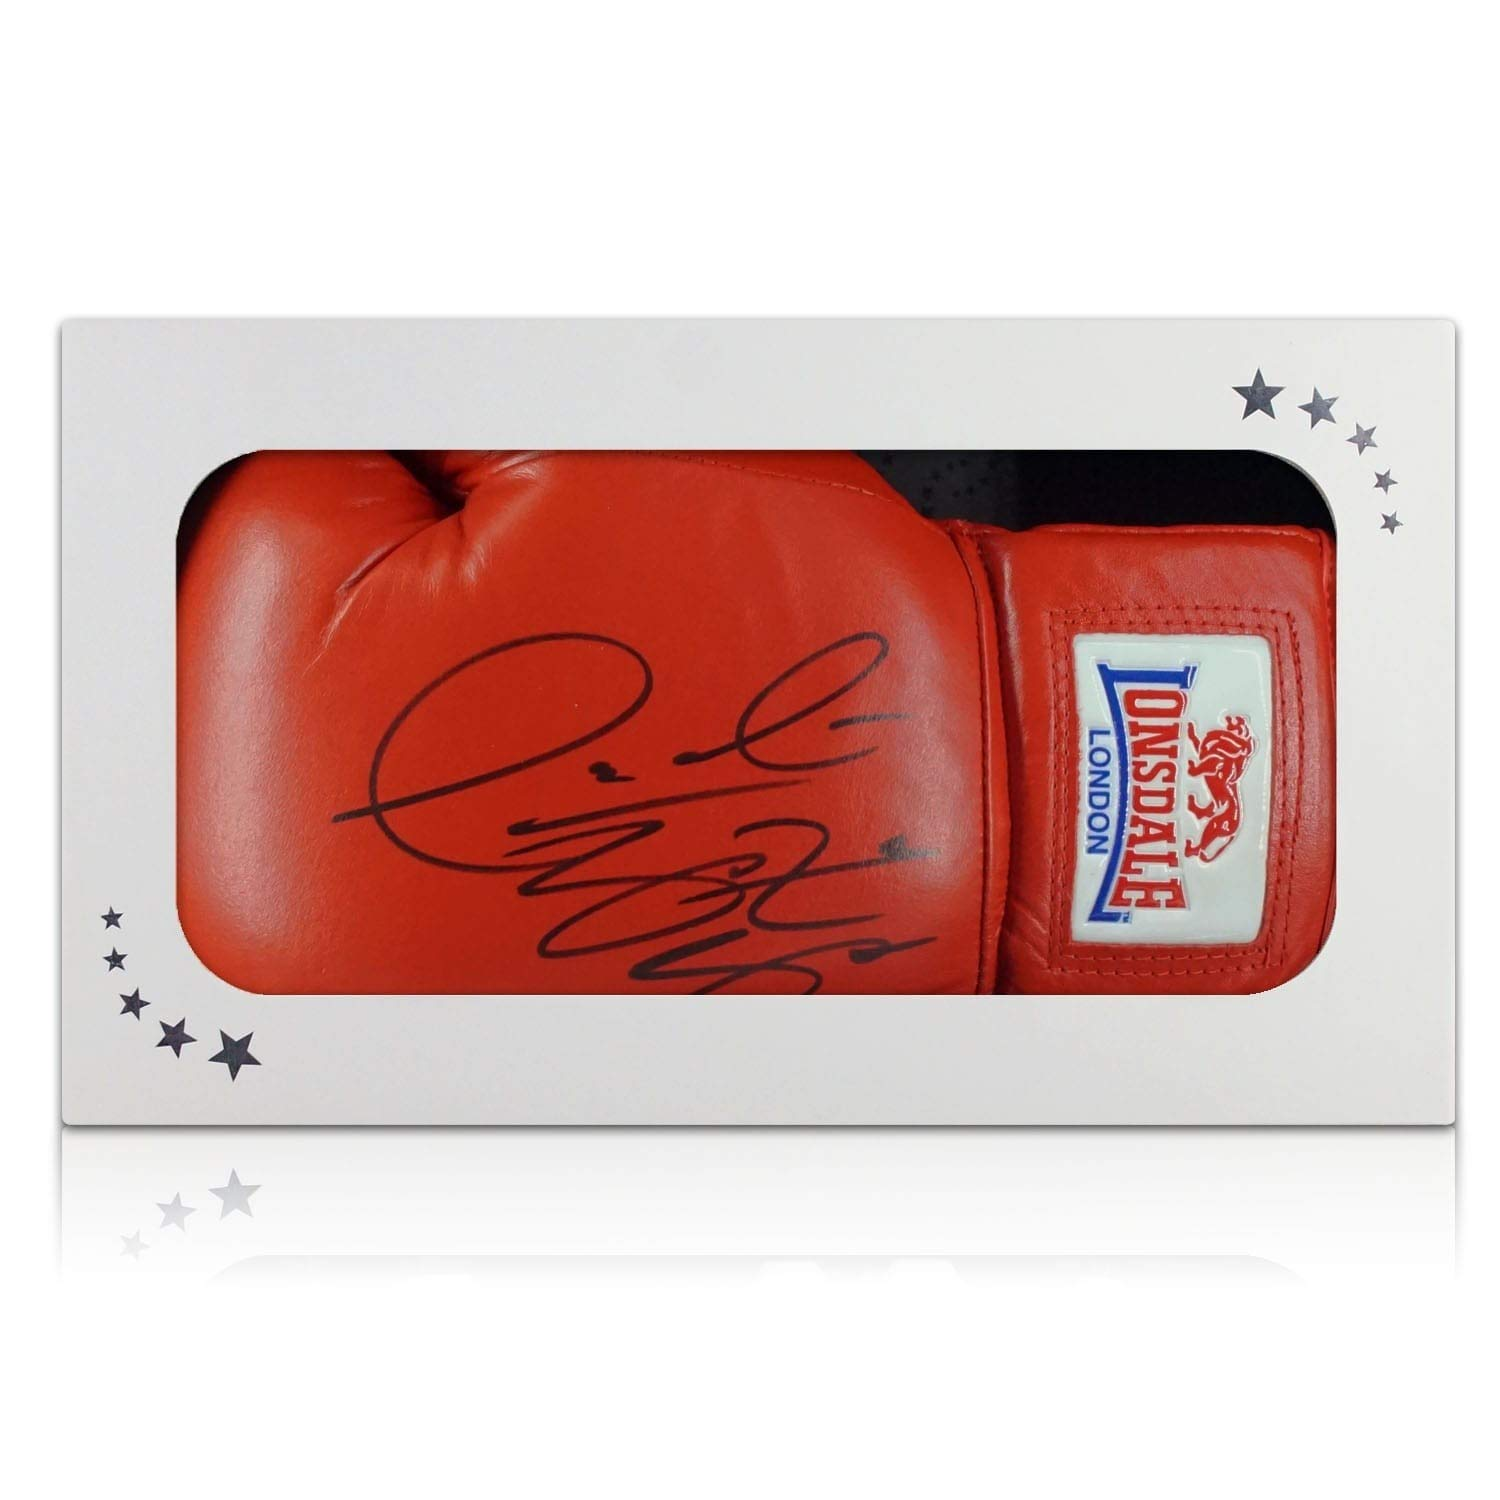 Deontay Wilder Signed Red Boxing Glove In Gift Box | Autographed Memorabilia Exclusive Memorabilia